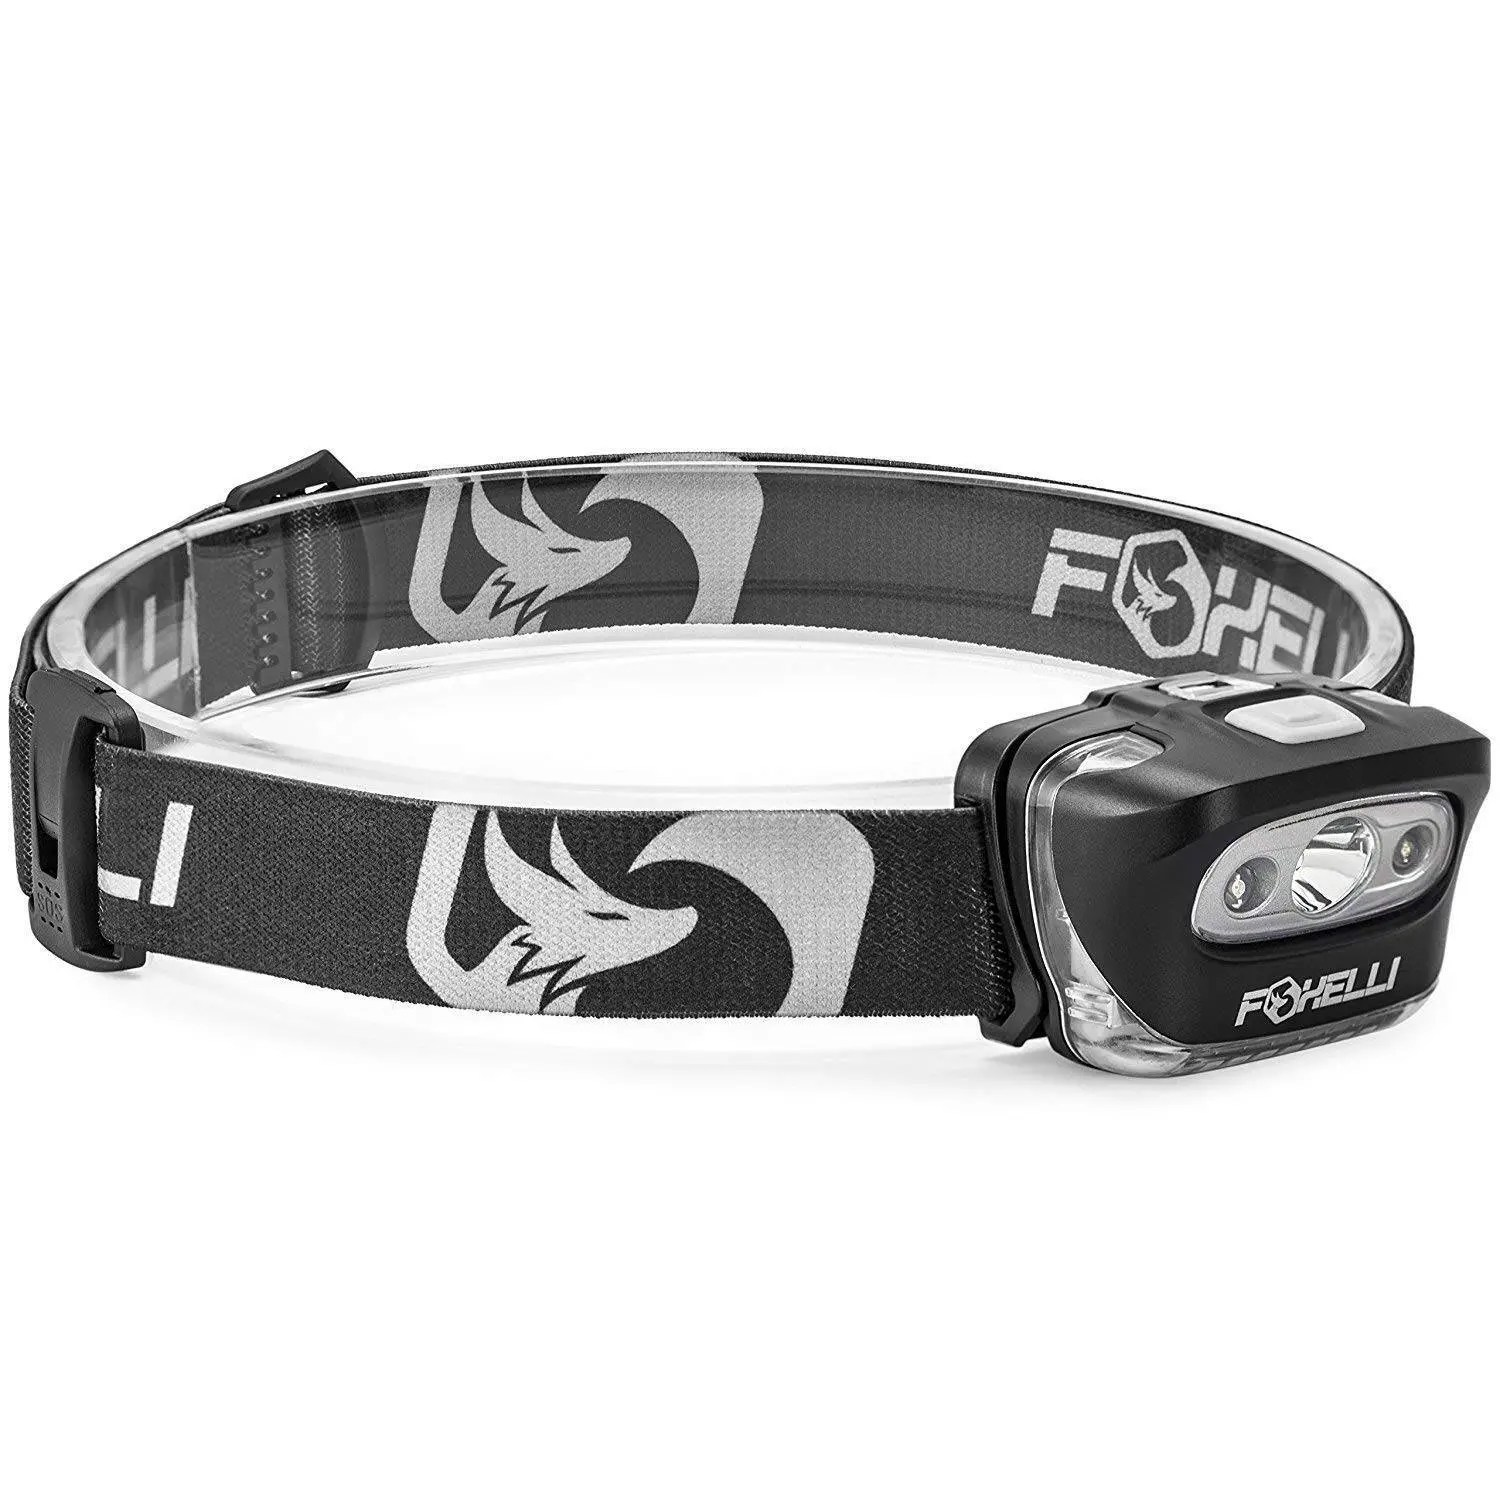 Foxelli 165 Lumen Headlamp Flashlight